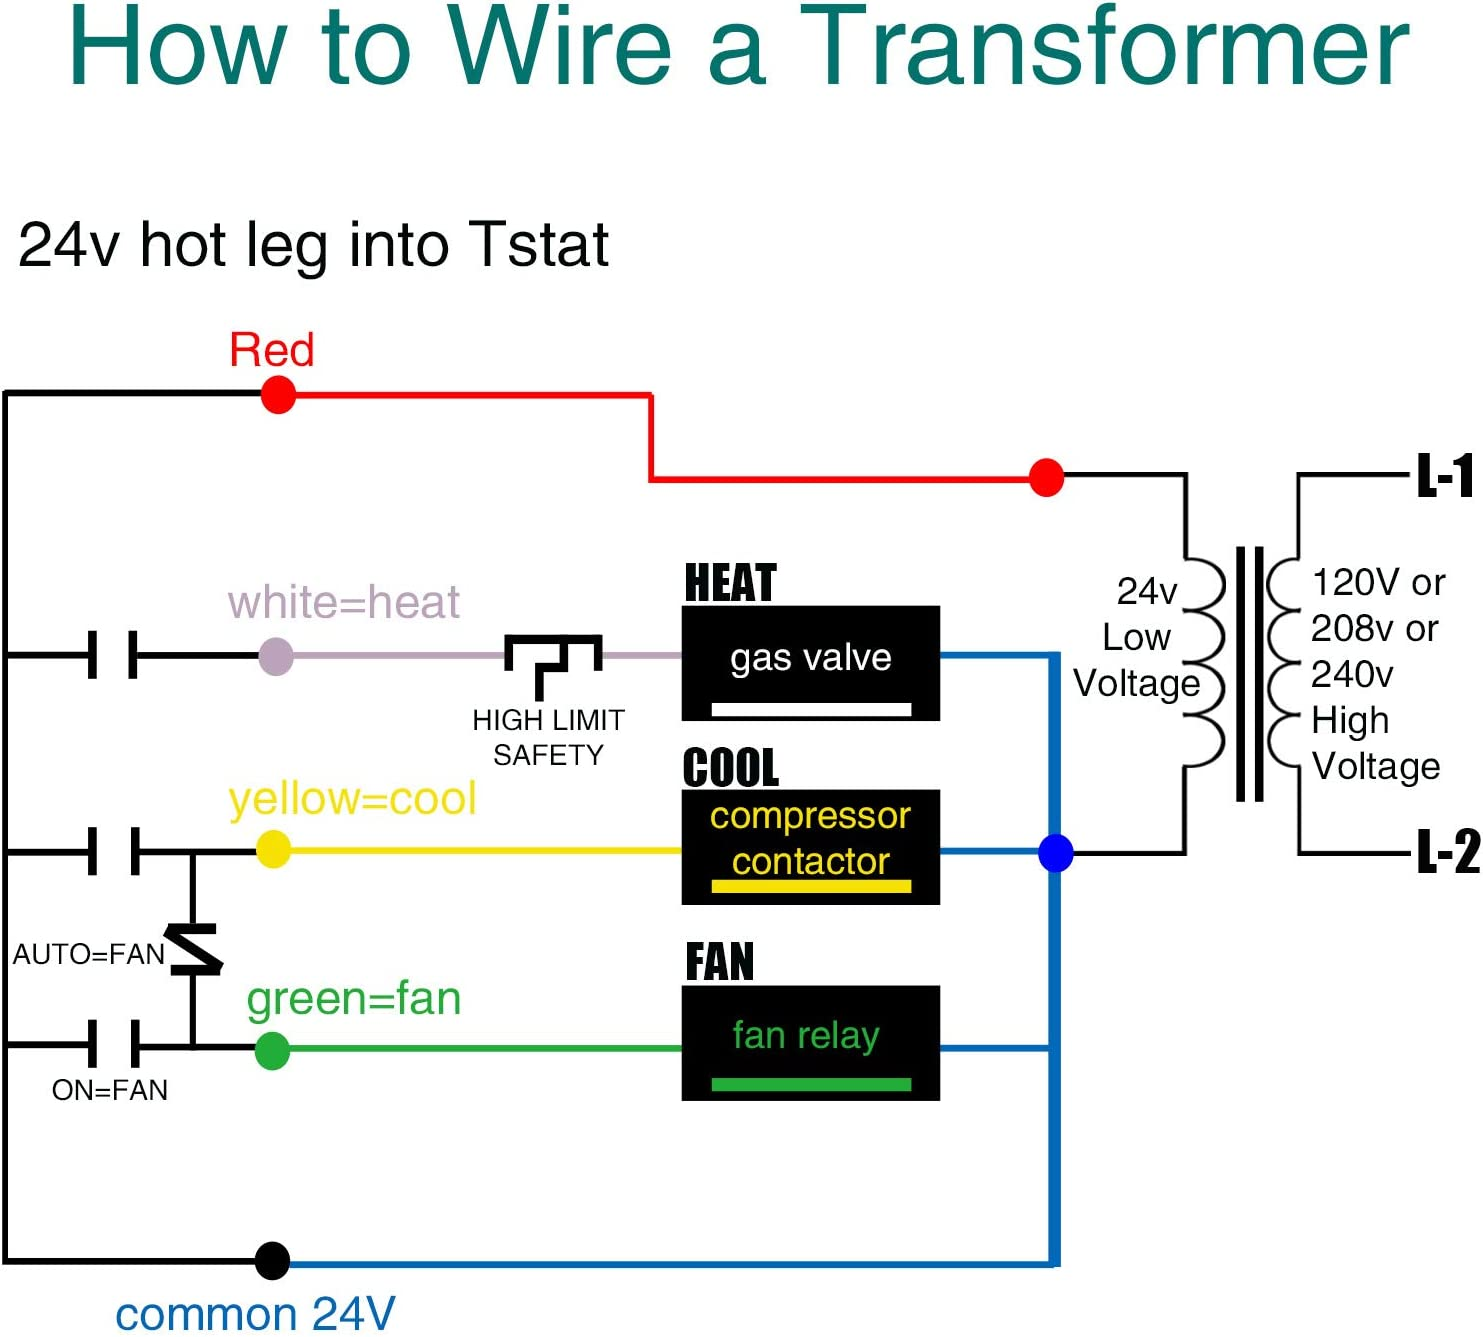 Control Transformer 40VA, Primary 120, 208, 240V Secondary 24V, HVAC Furnace  Multi Tap - - Amazon.com | Hvac Transformer Wiring Diagram |  | Amazon.com